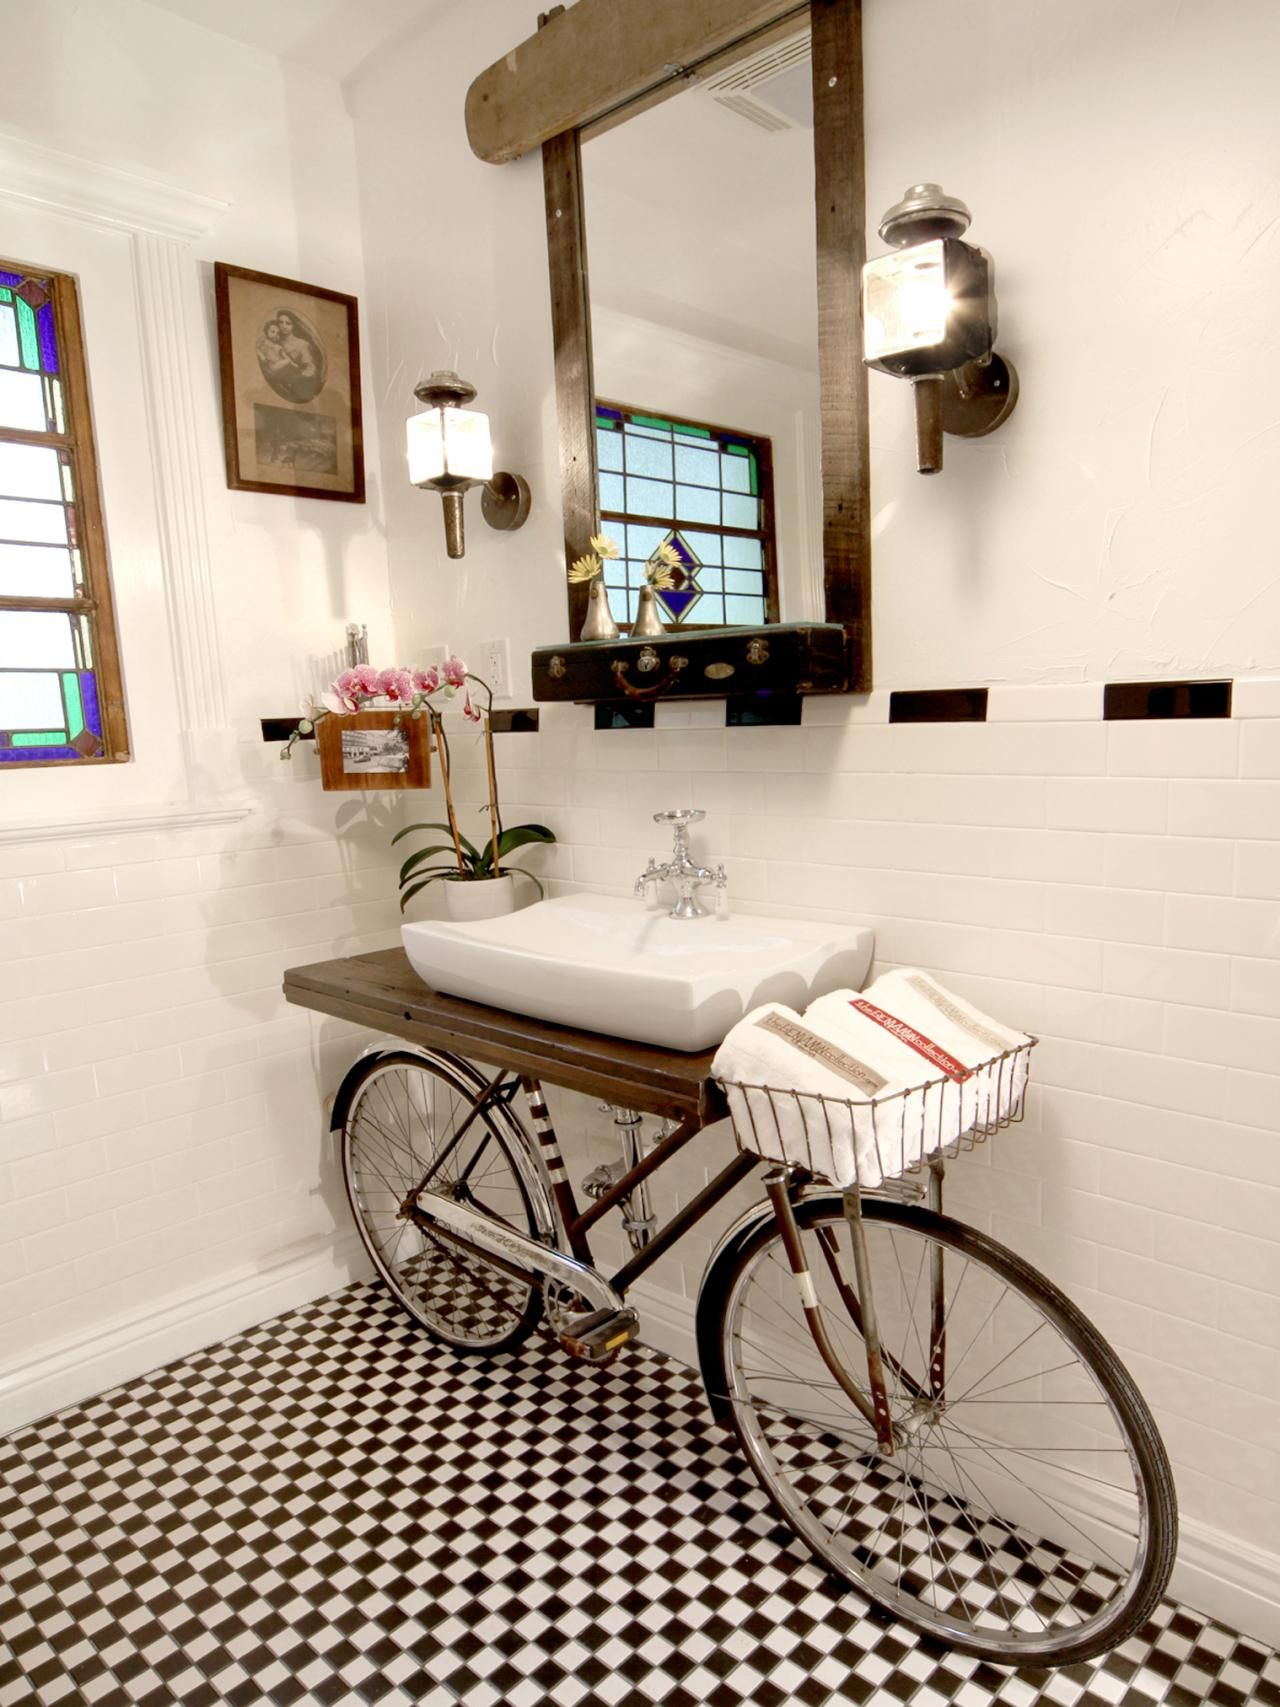 Stores that sell bathroom vanities - 20 Upcycled And One Of A Kind Bathroom Vanities